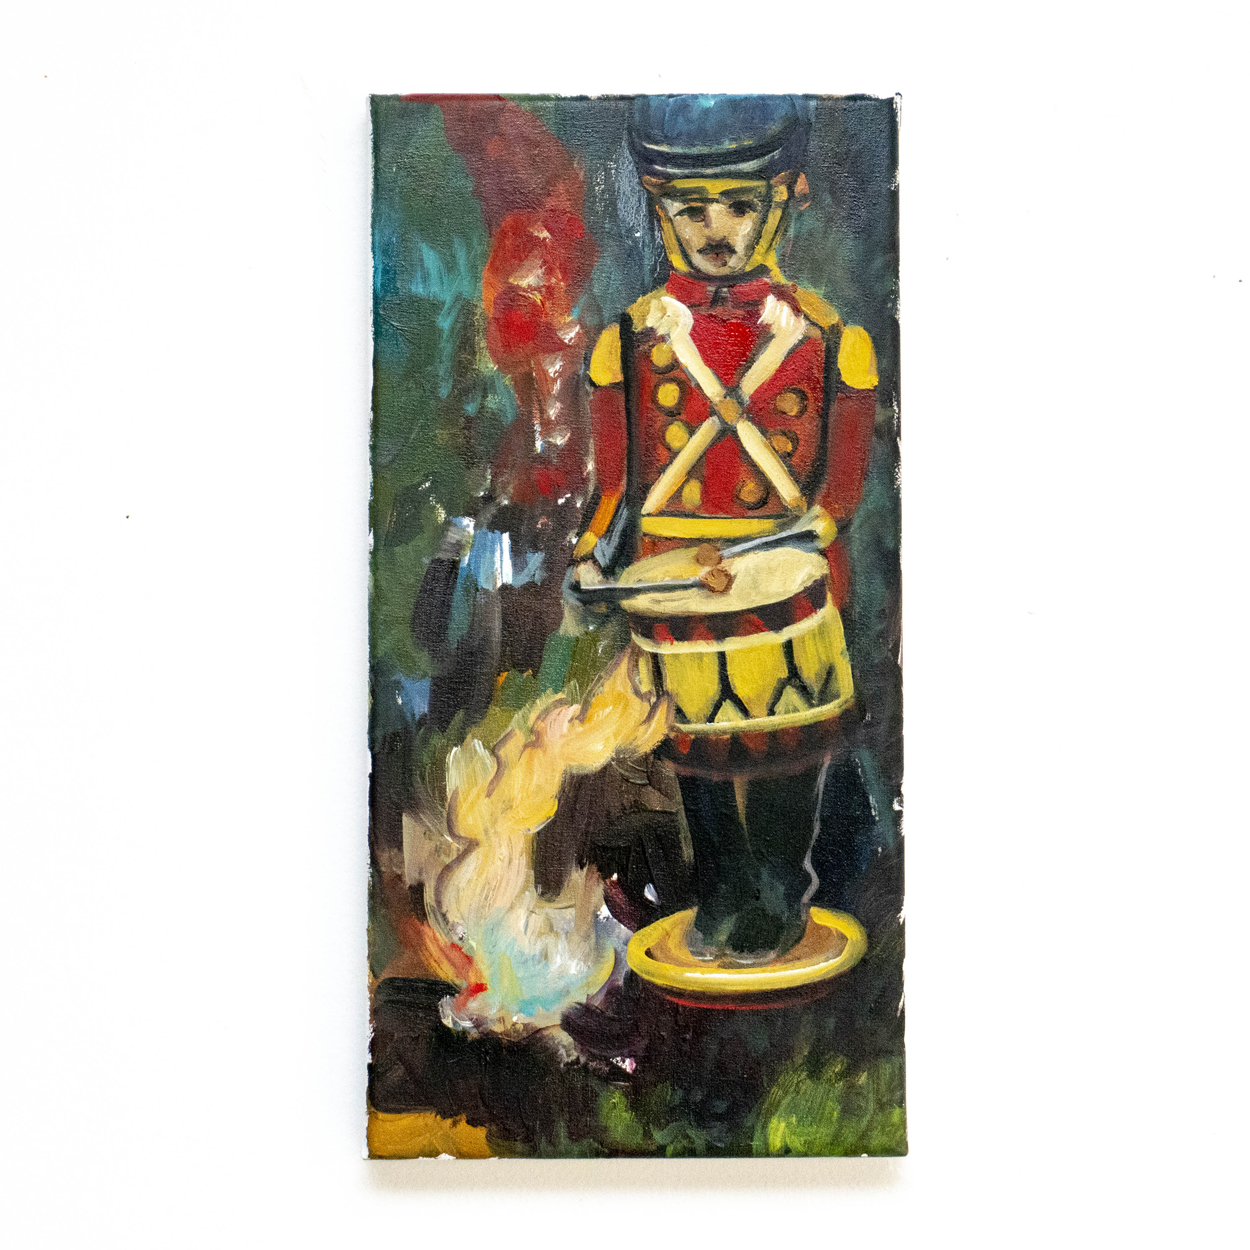 SLANGEN _ TheFlame-in-the-Drum,40x20cm,oil on canvas,2019_VIERKANT